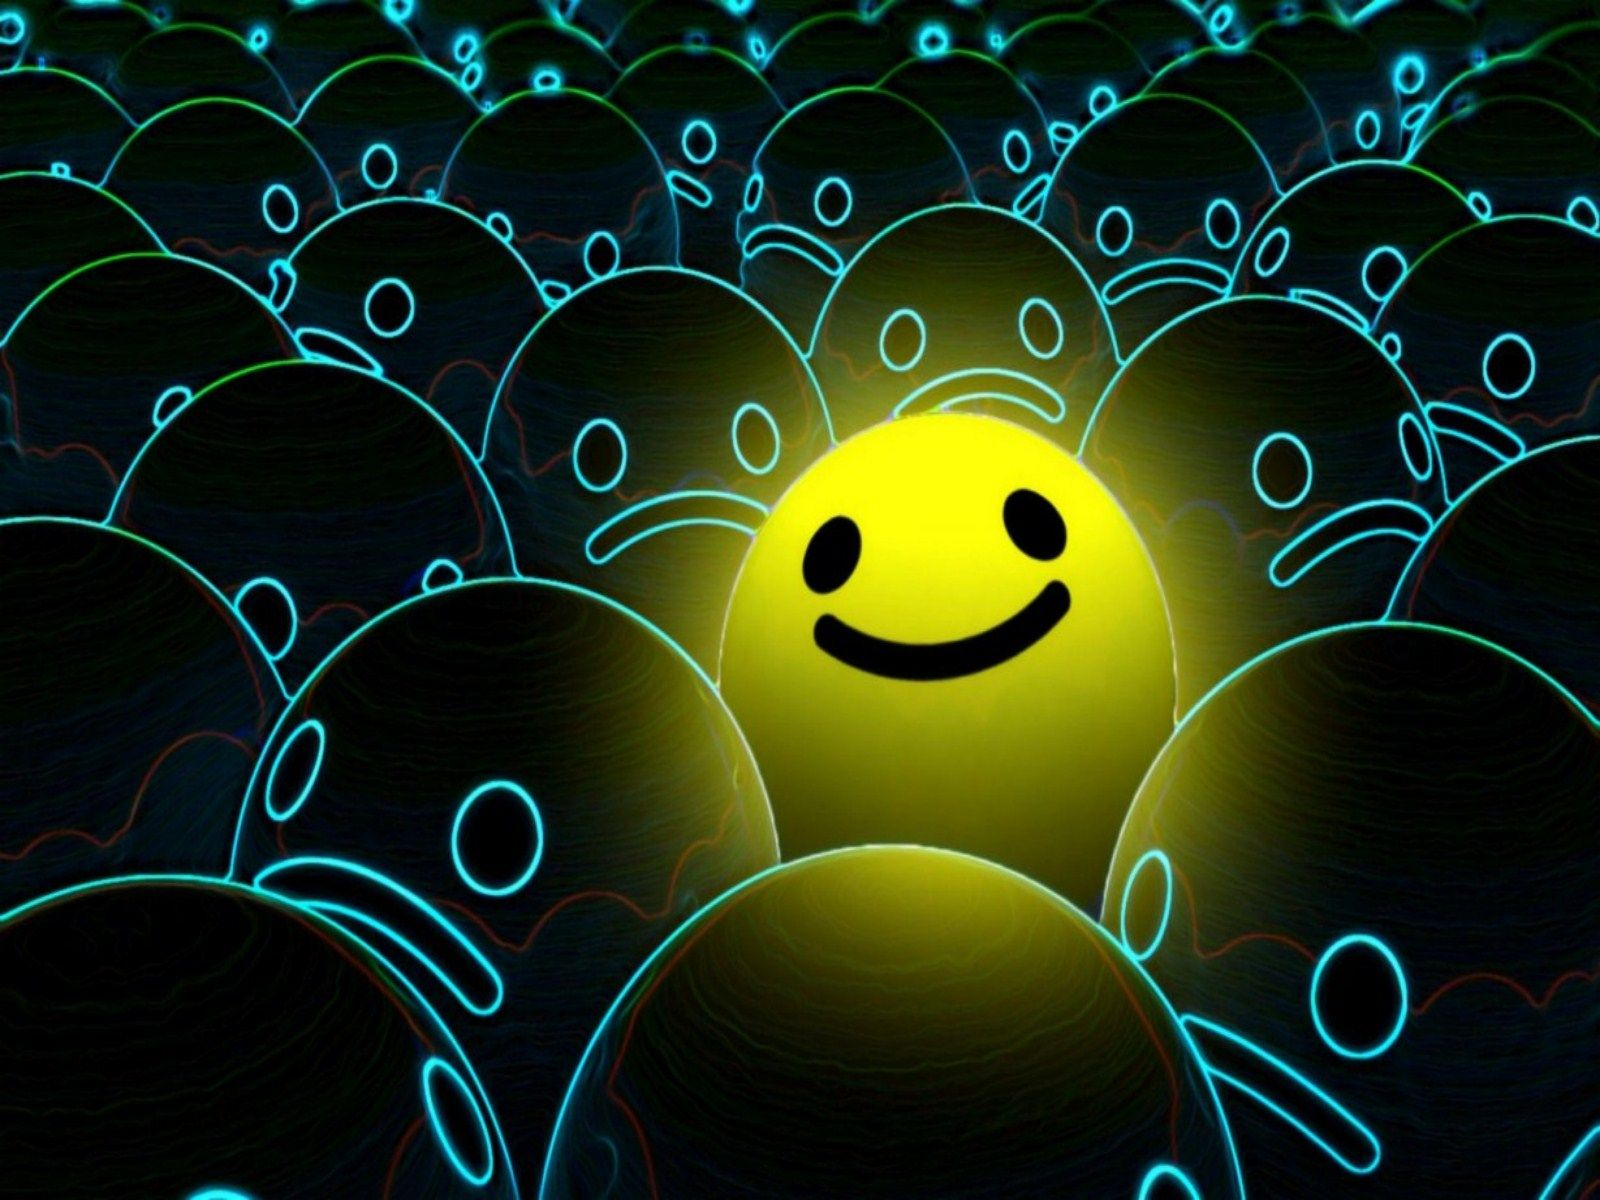 Smileys Phone Backgrounds On Wallpaper How To Draw A Smiley Face Iphone Wallpapers And Background Smiley Smiley Face Smile Wallpaper